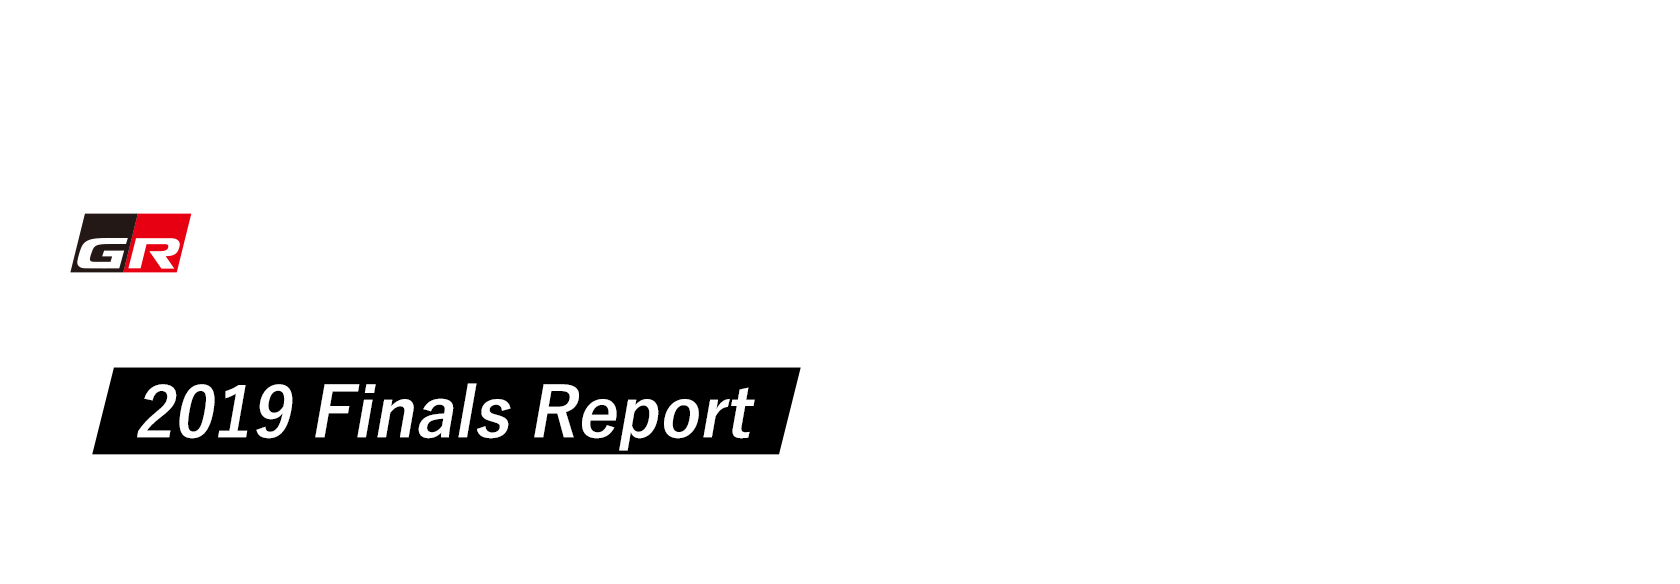 GR Supra GT CUP 2019 Finals Report THE 46TH TOKYO MOTOR SHOW 2019